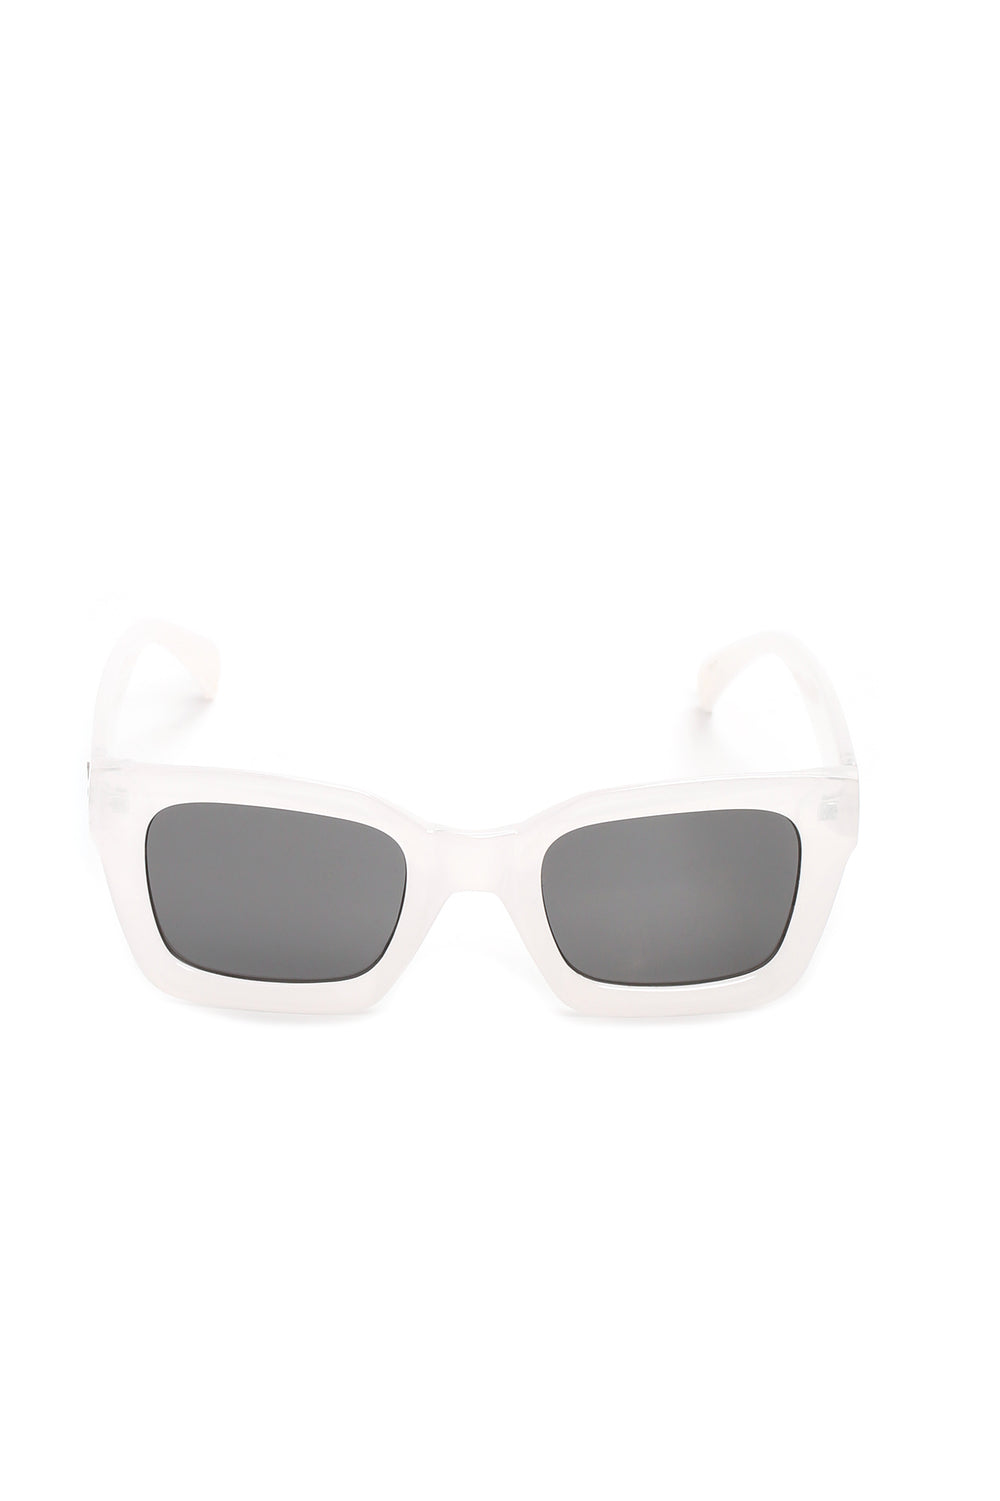 Hang In There Sunglasses - White